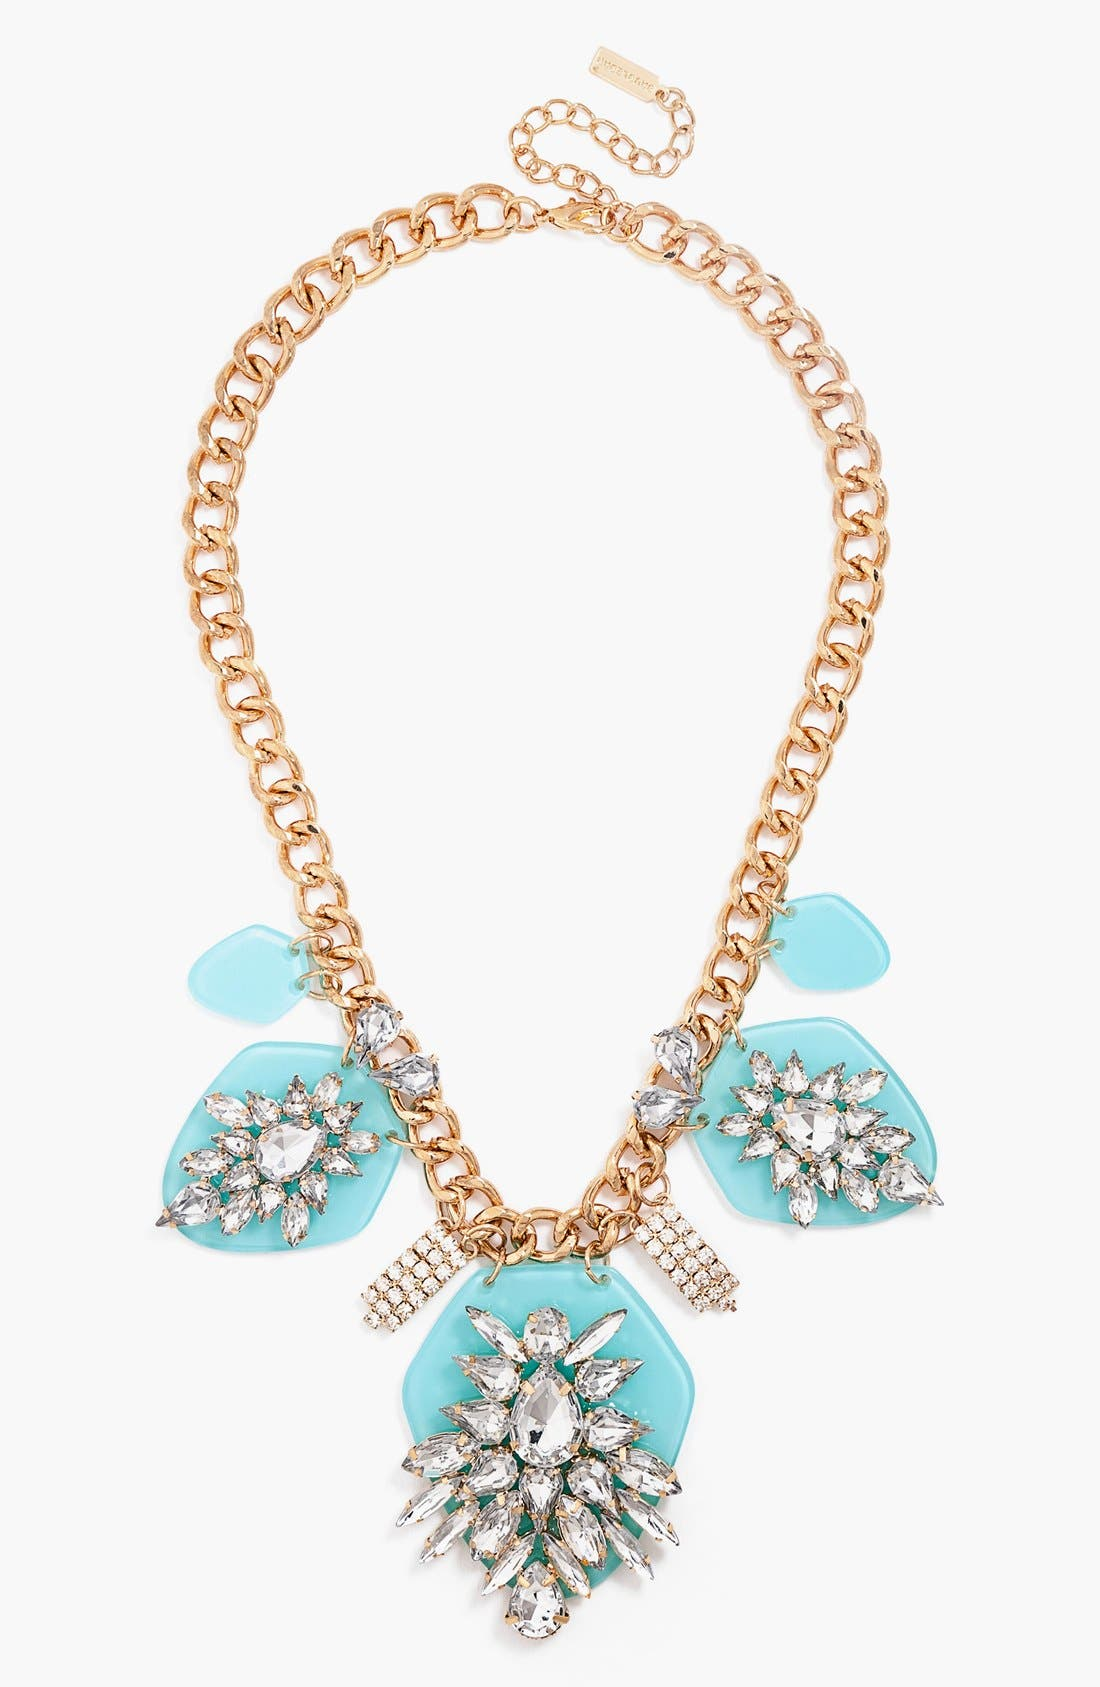 Main Image - BaubleBar 'Constellation' Frontal Necklace